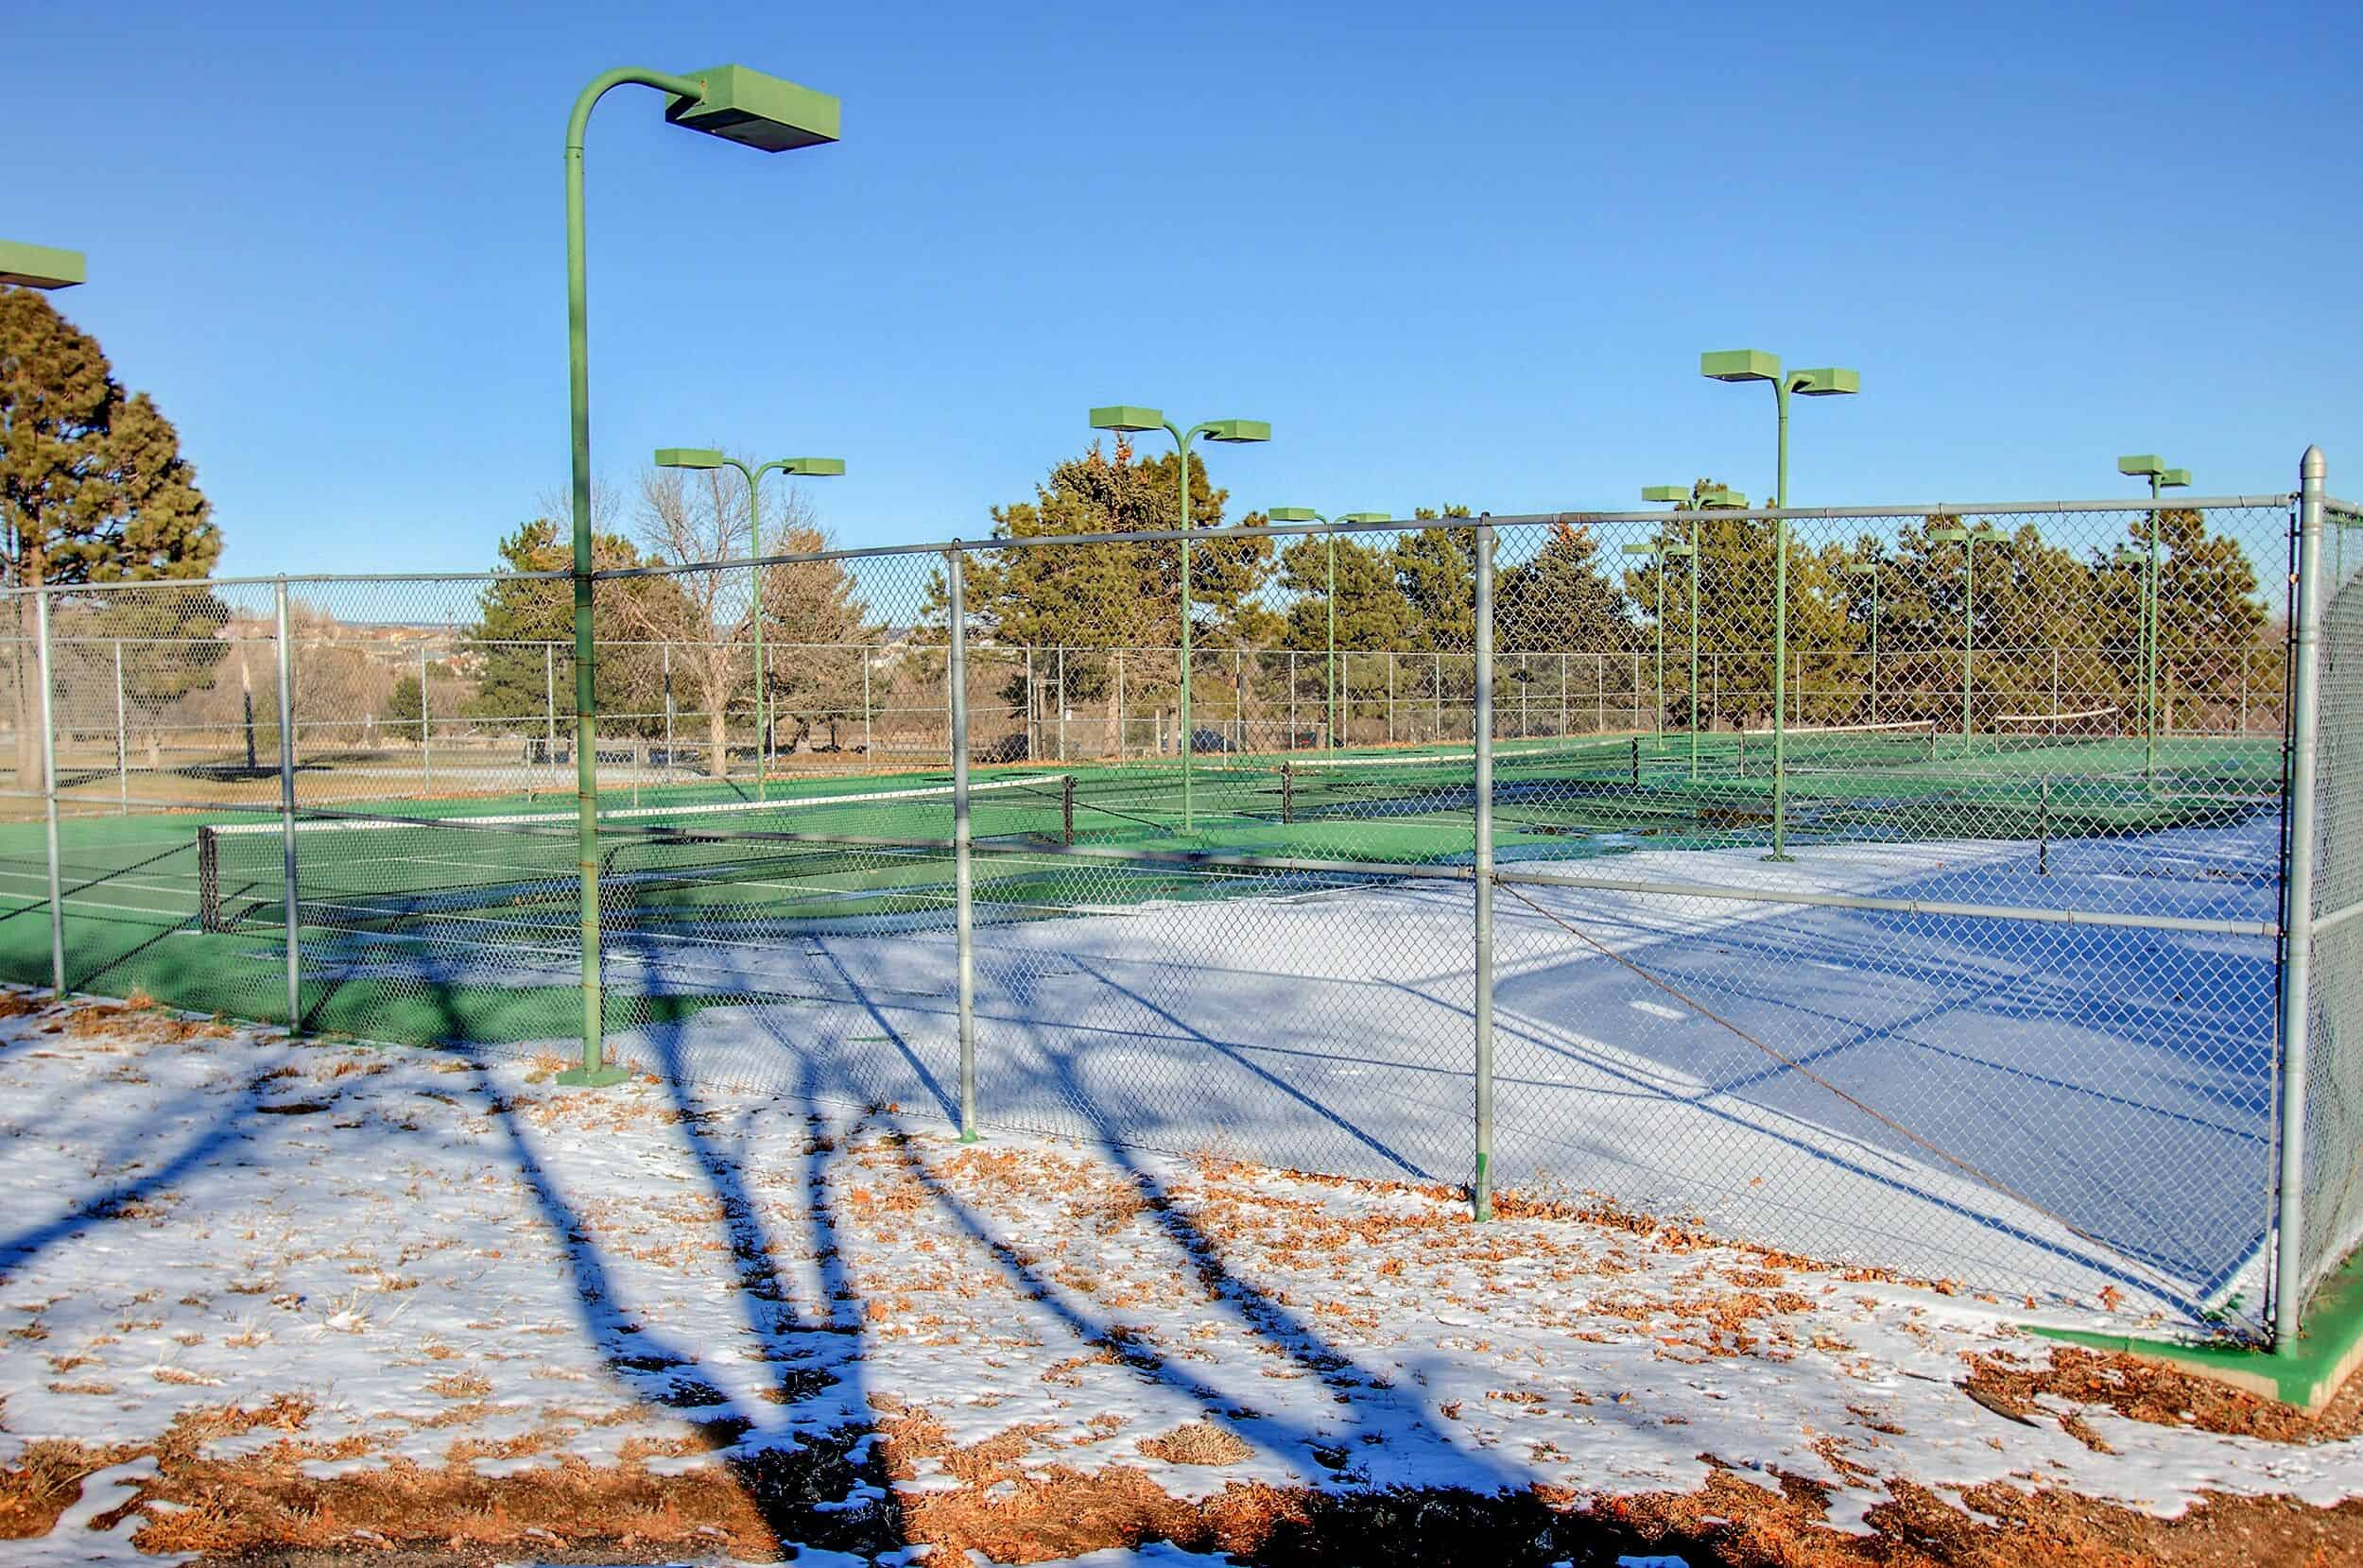 Tennis Courts at Nearby Park